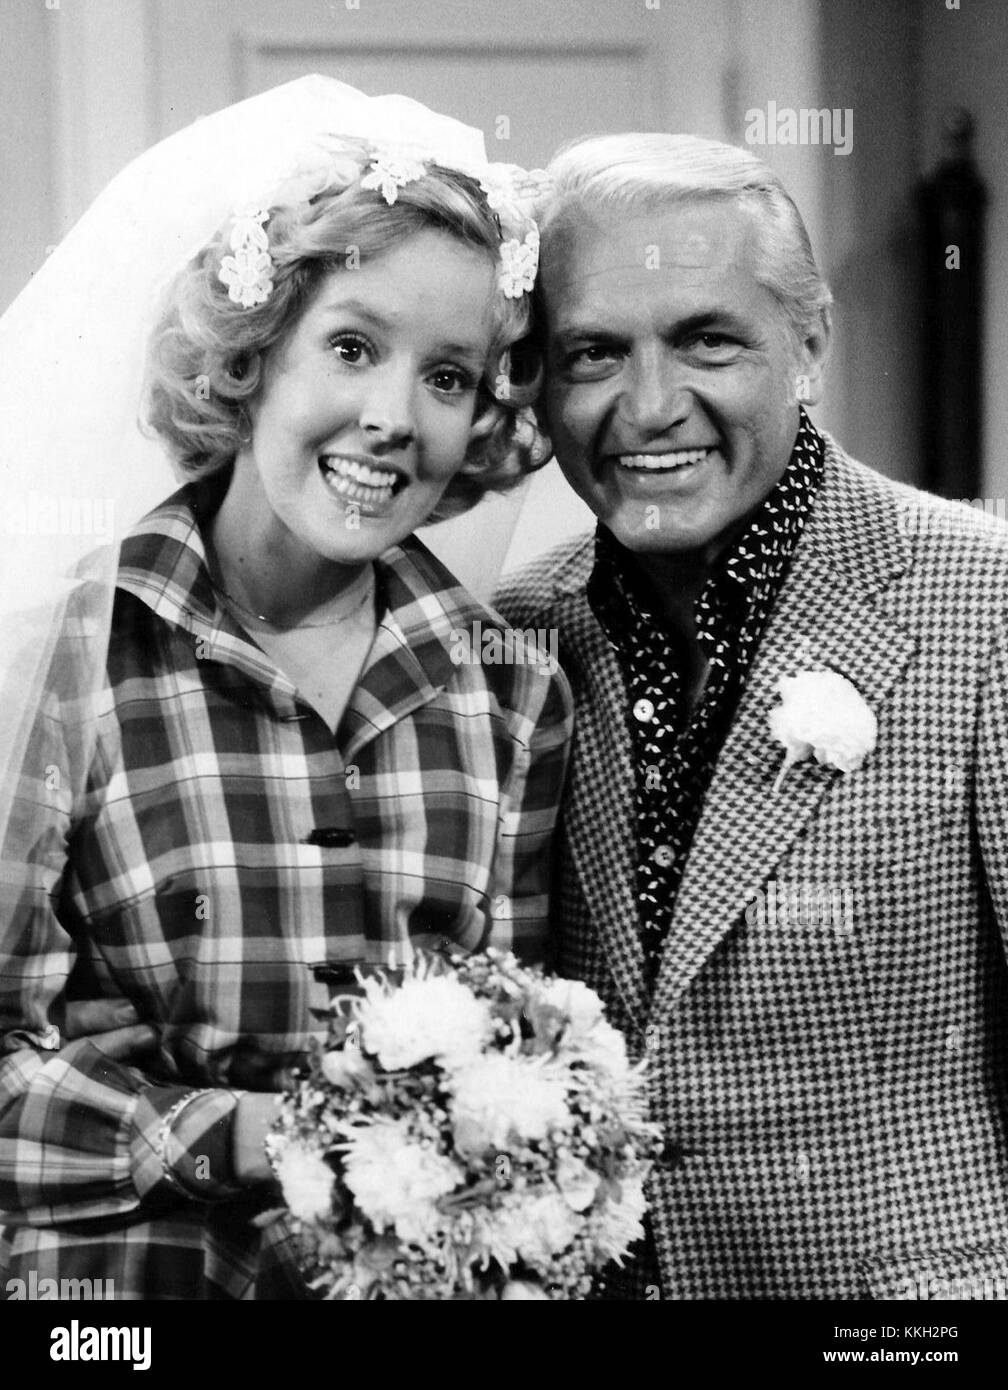 Georgia Engel Ted Knight Mary Tyler Moore Show Wedding 1975 - Stock Image